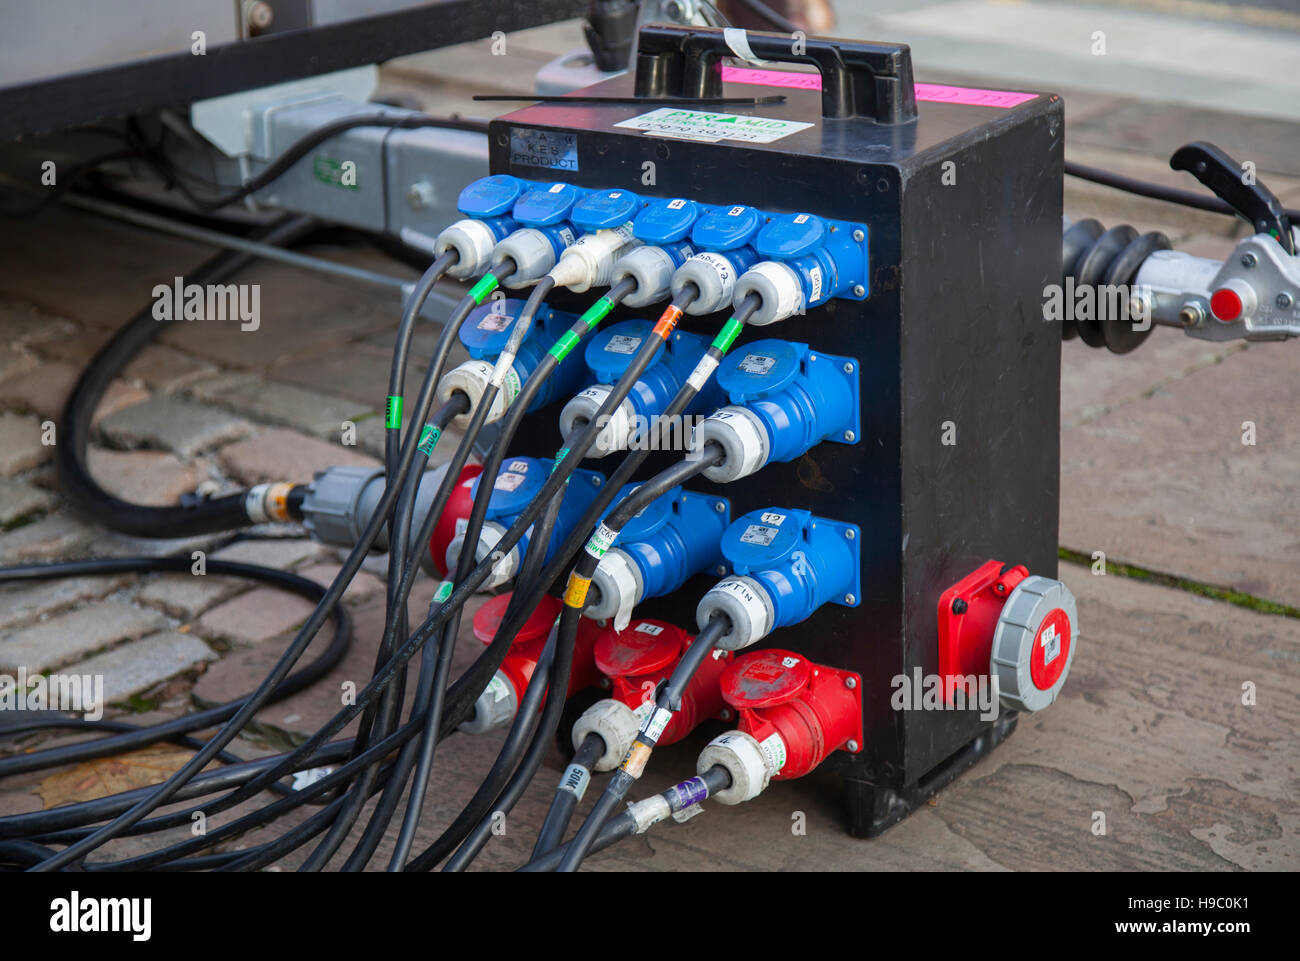 Electrical Distribution Board Stock Photos Home Wiring Box Kes Pd40 Temporary Installations With Range Of Industrial Plugs Sockets Exposed